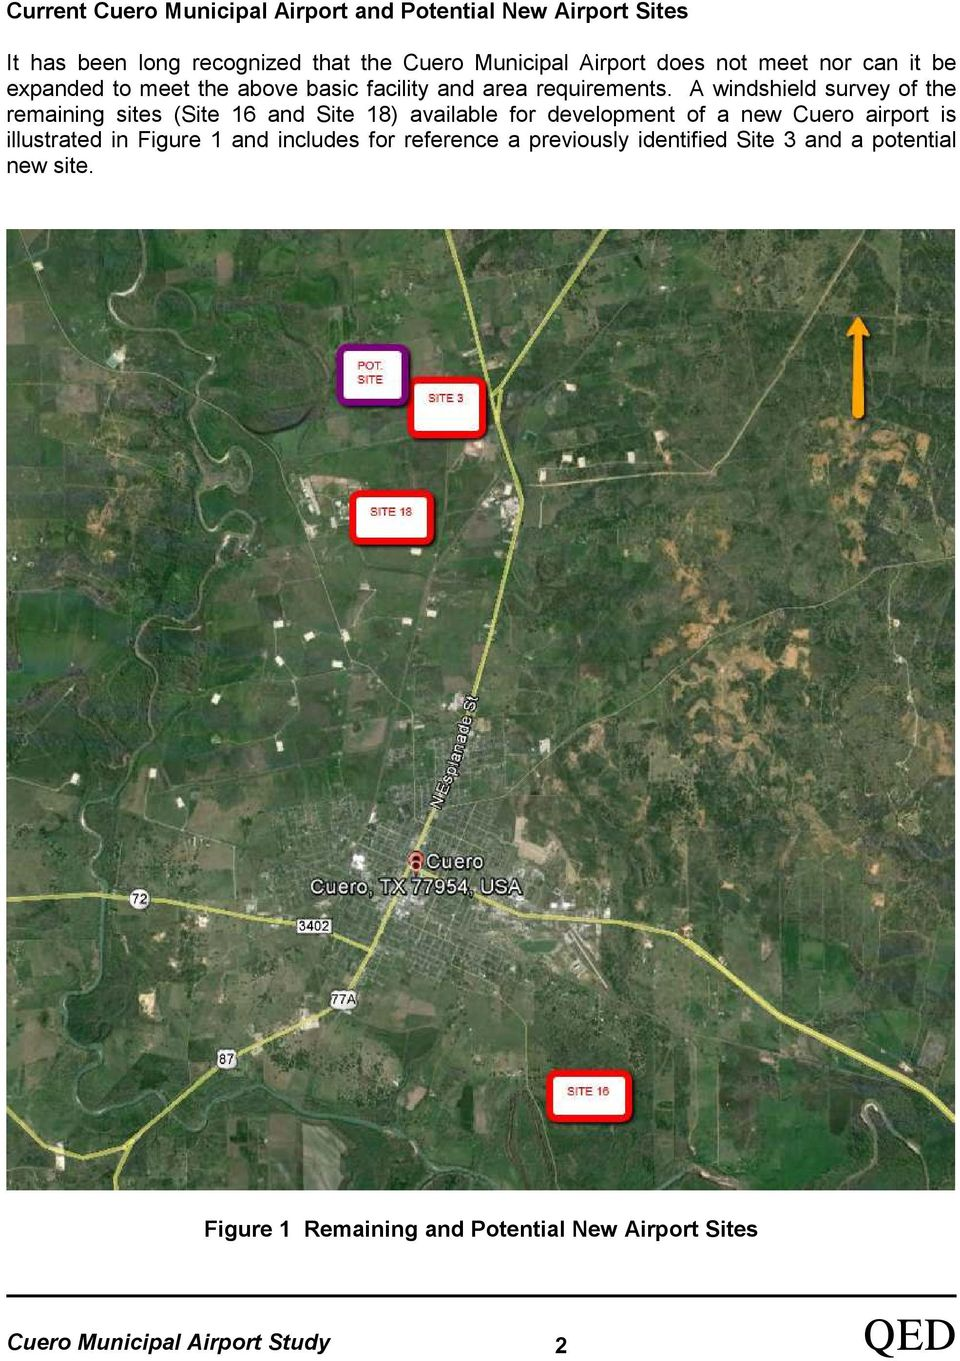 A windshield survey of the remaining sites (Site 16 and Site 18) available for development of a new Cuero airport is